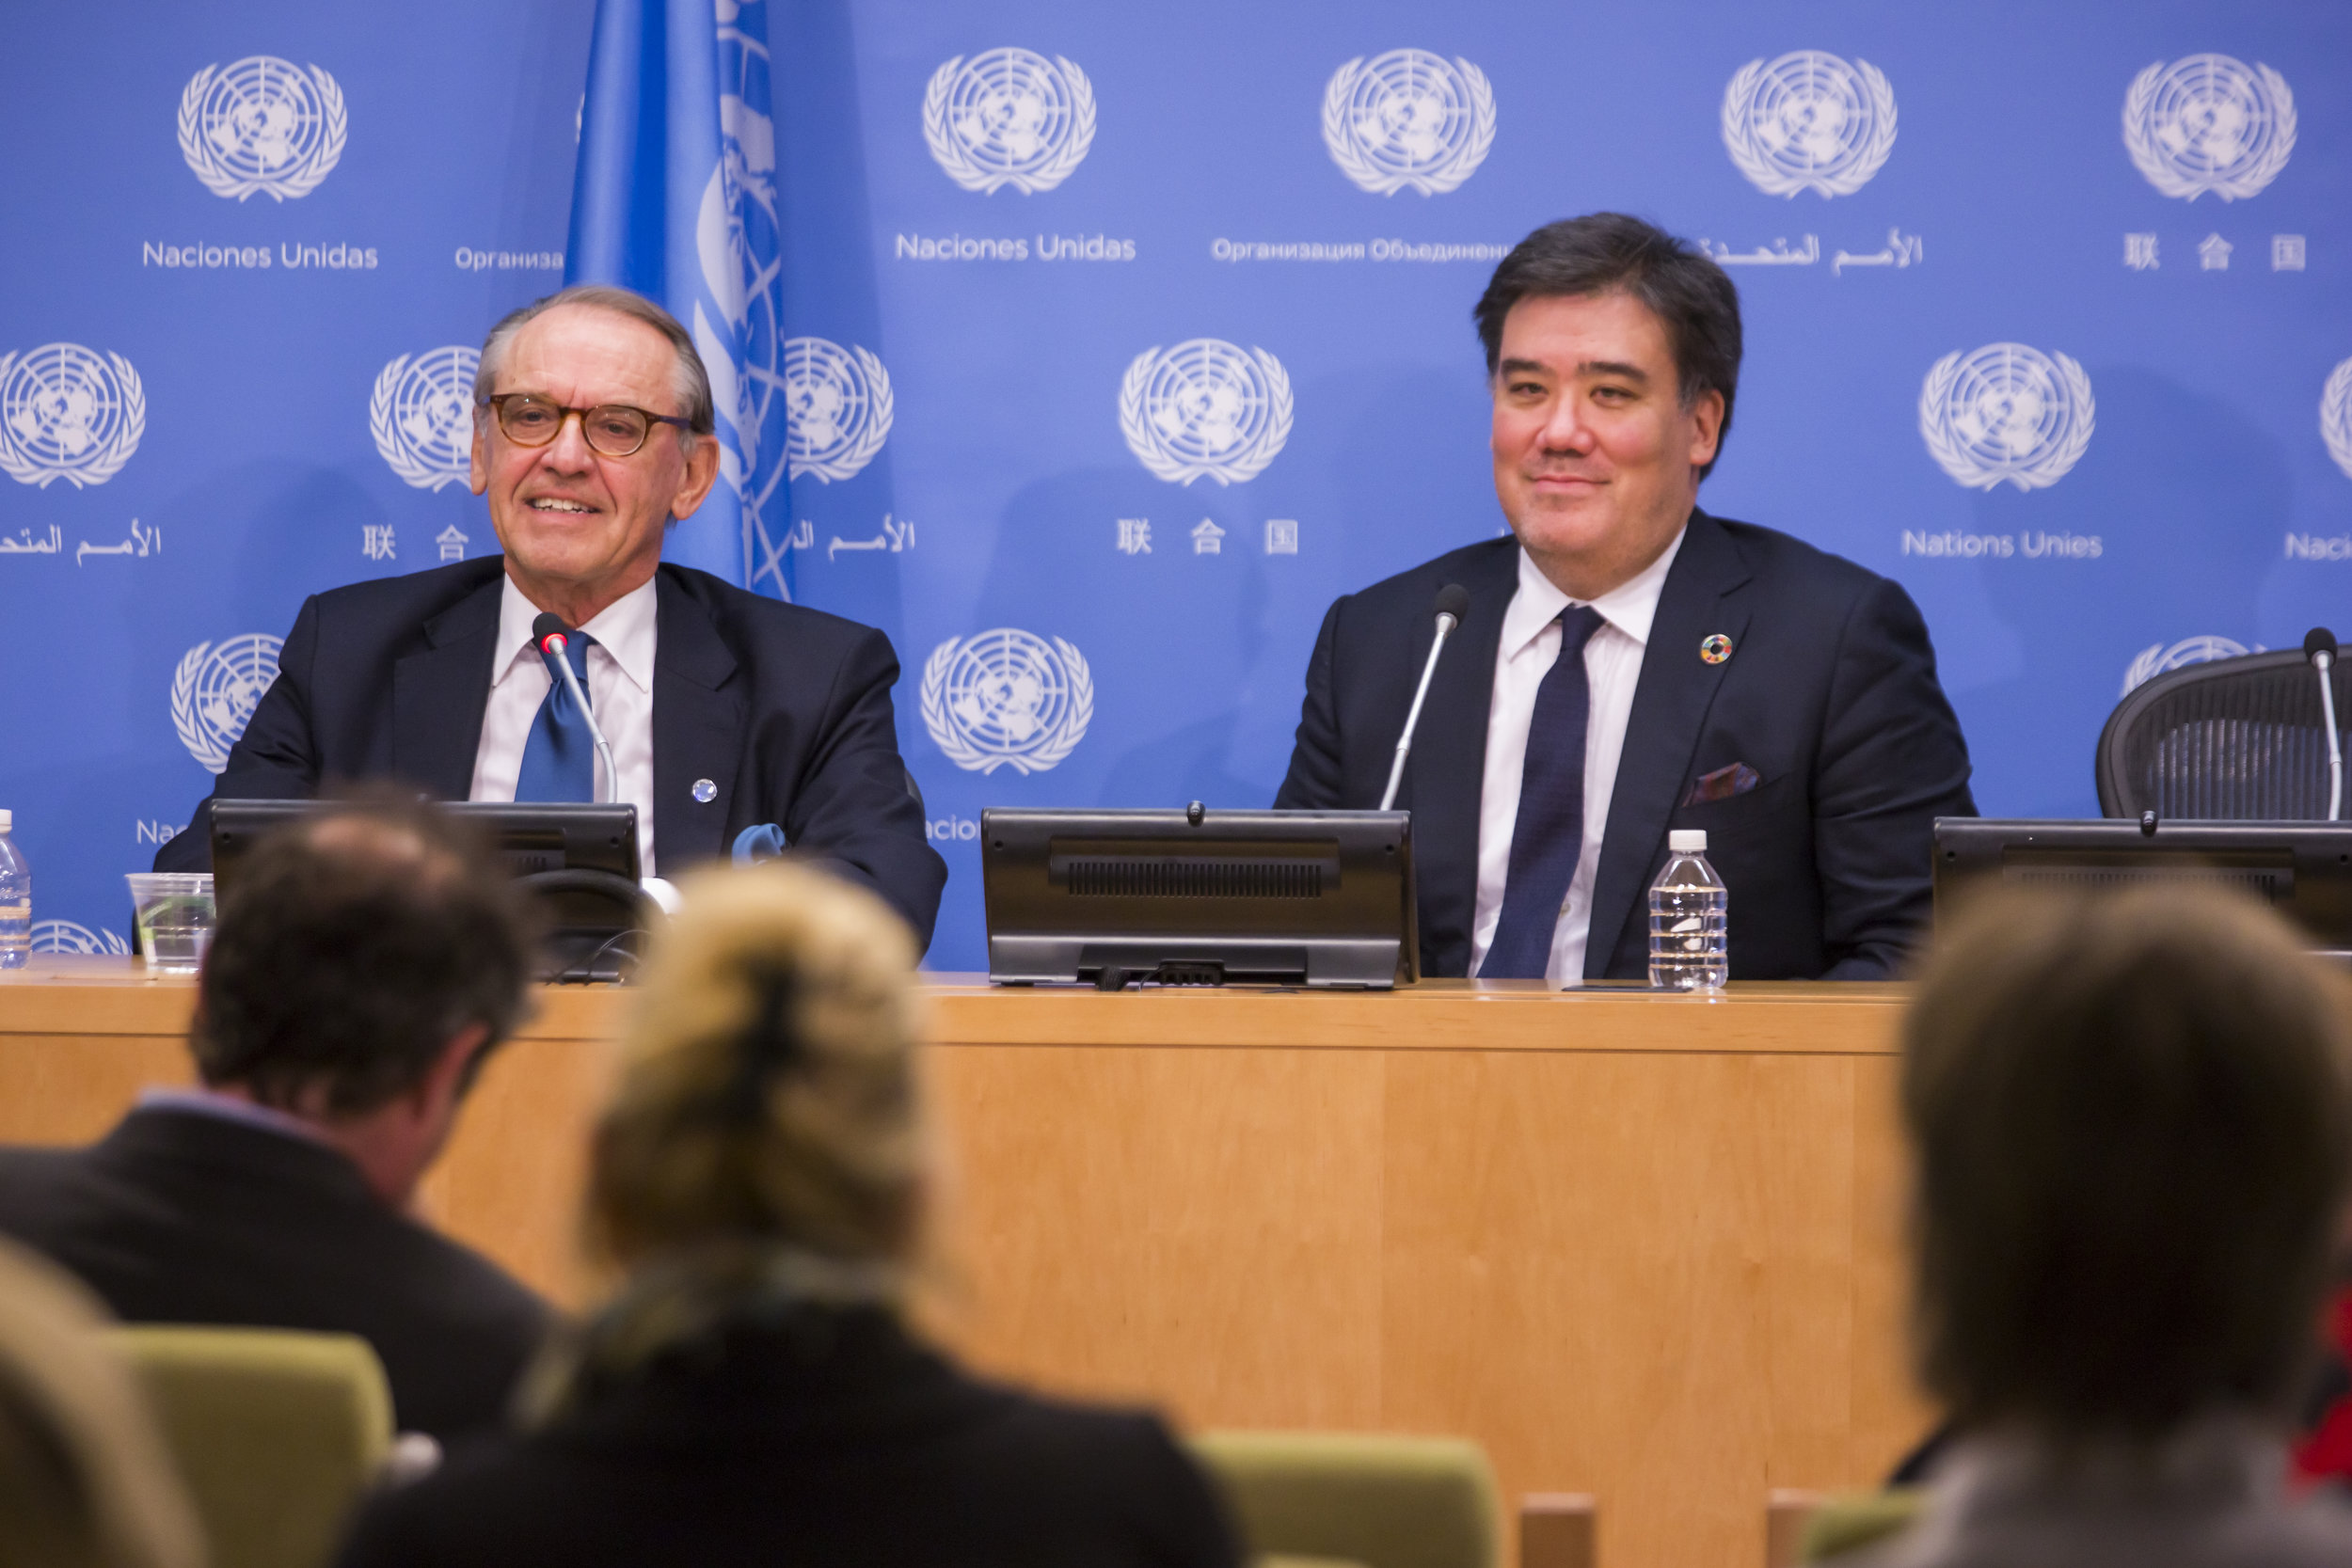 """In December 2016 Alan Gilbert conducted the Philharmonic on the floor of the United Nations General Assembly to celebrate the tenure of Secretary-General Ban Ki-moon and the transition of leadership to António Guterres, who would take office on January 1, 2017. At the U.N.'s daily press briefing that day the Music Director and then Deputy Secretary-General Jan Eliasson discussed the new initiative, which Gilbert would lead following his Philharmonic tenure, in which musicians from around the world will come together to perform music at critical times in support of peace, development, and human rights. """"The state of the world demands a response, and we are working fervently to realize this project,"""" Alan Gilbert later said at the concert."""